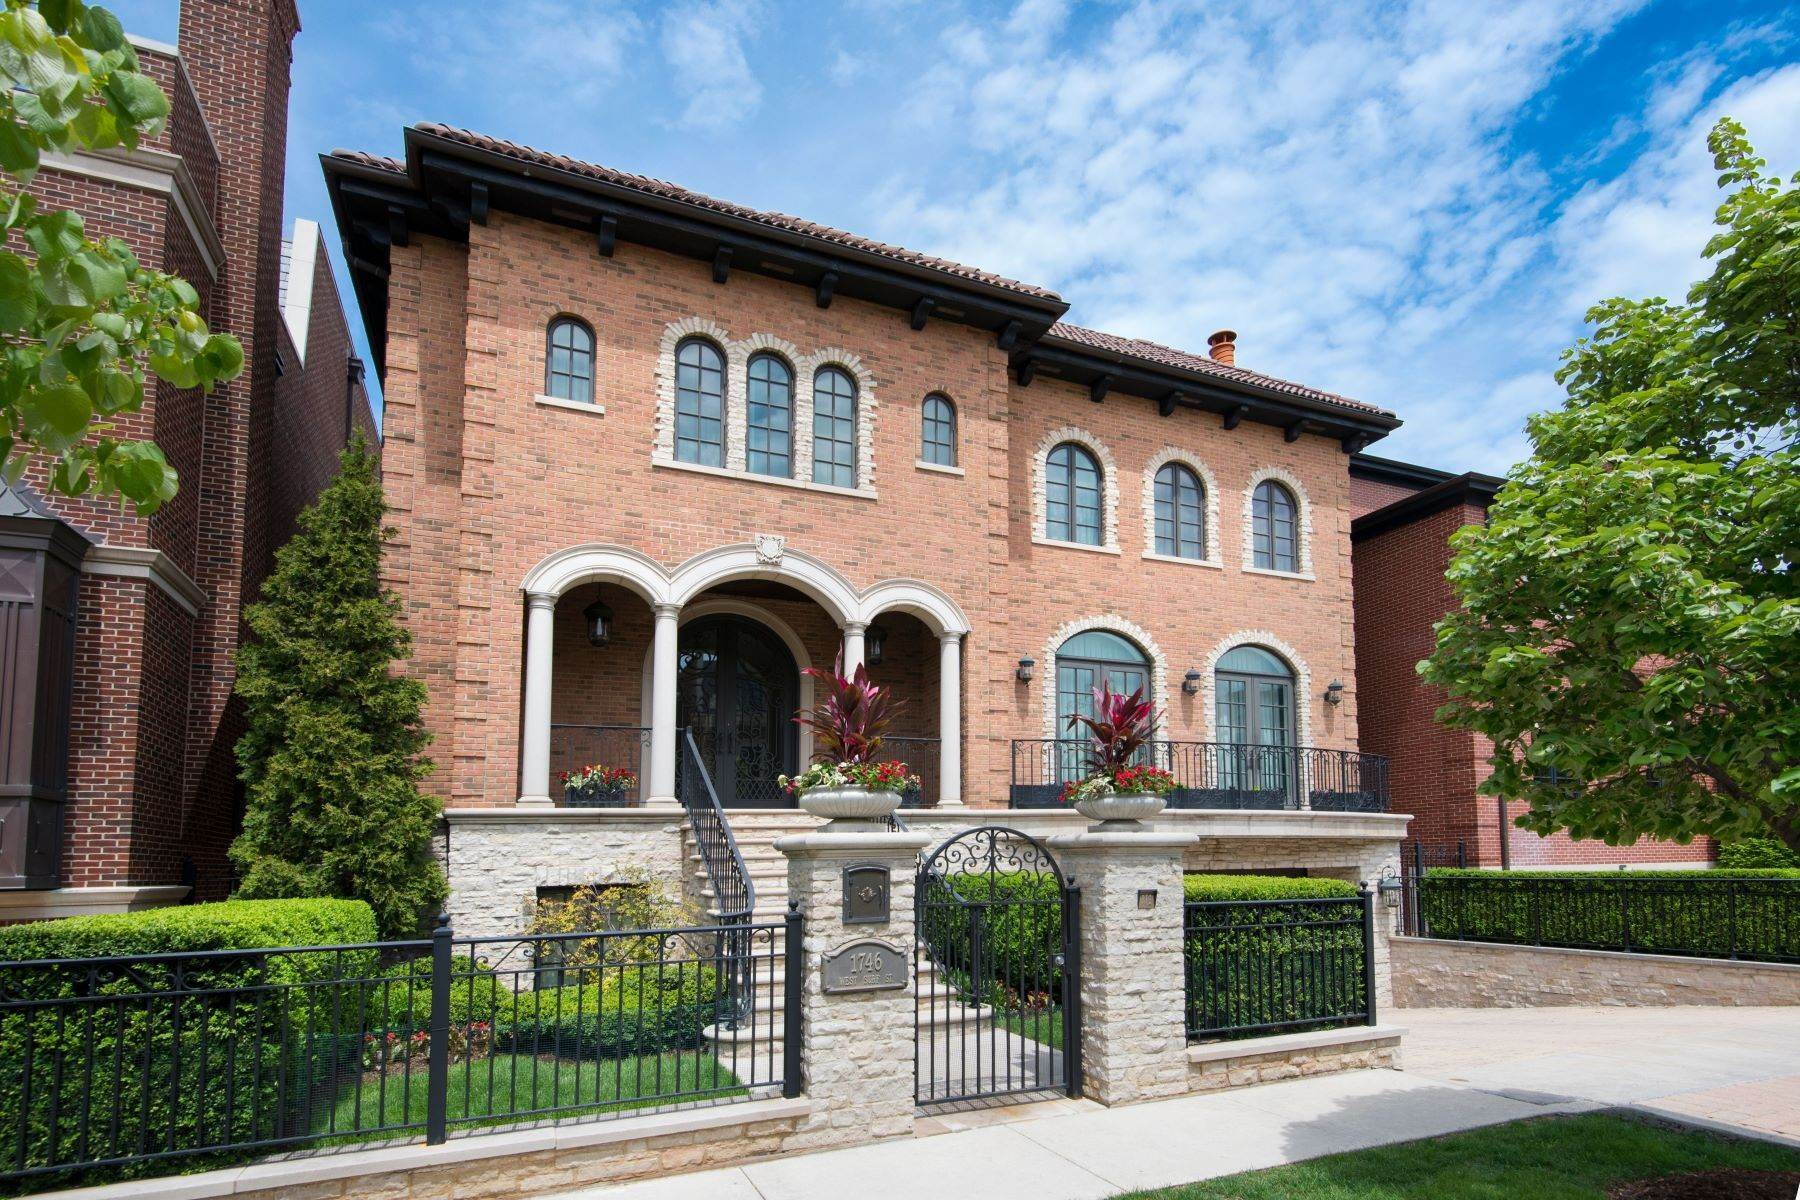 Single Family Homes for Sale at 1746 W Surf Street, Chicago, IL 60657 1746 W Surf Street Chicago, Illinois 60657 United States